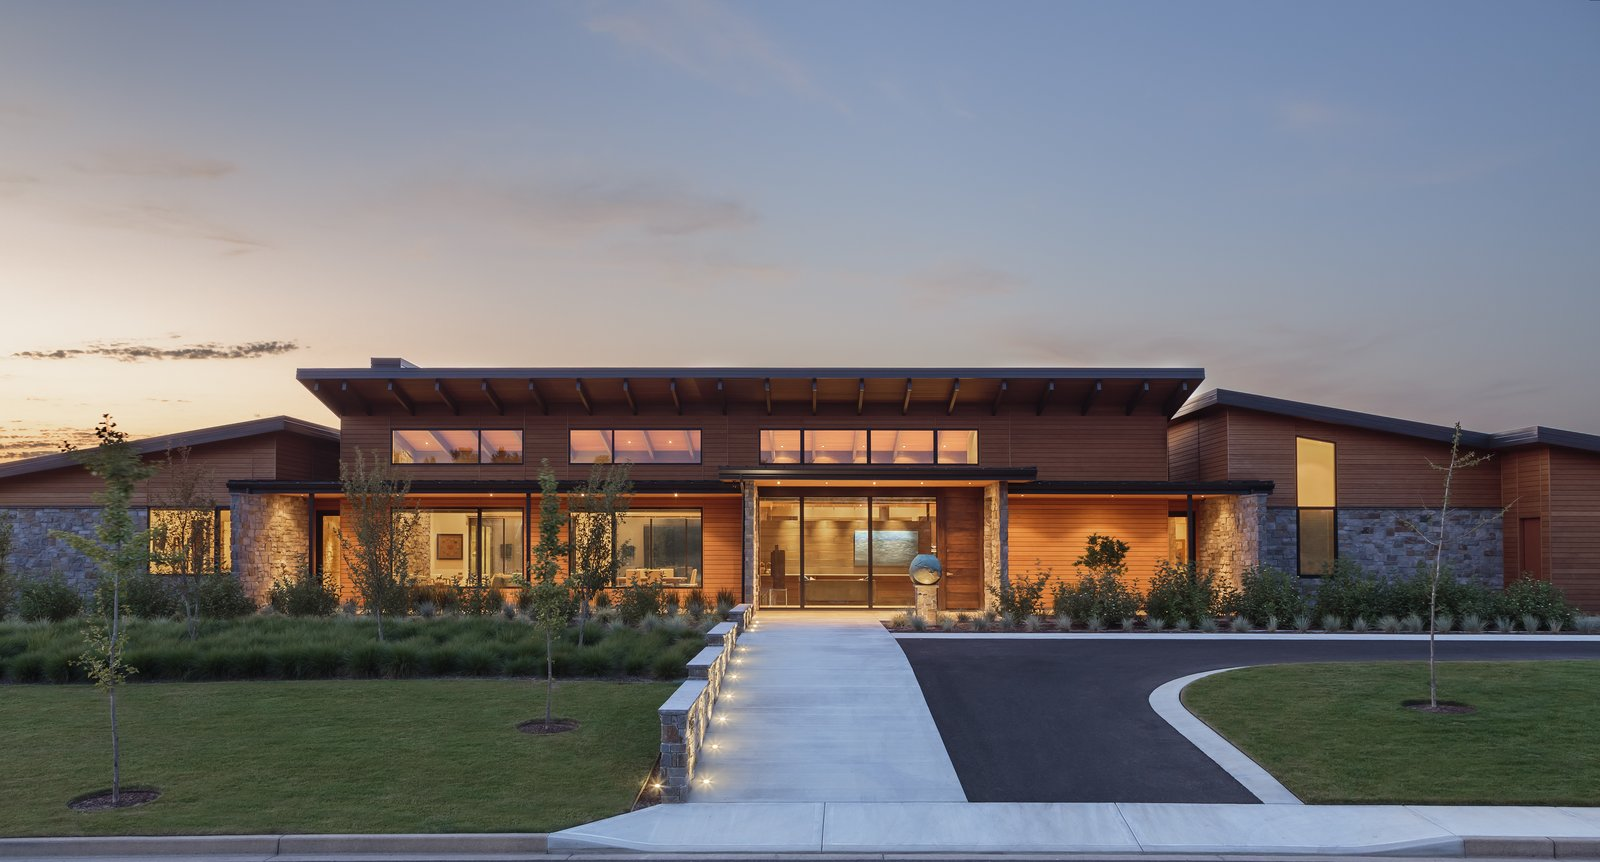 Approach  Westwind Residence by Giulietti / Schouten AIA Architects